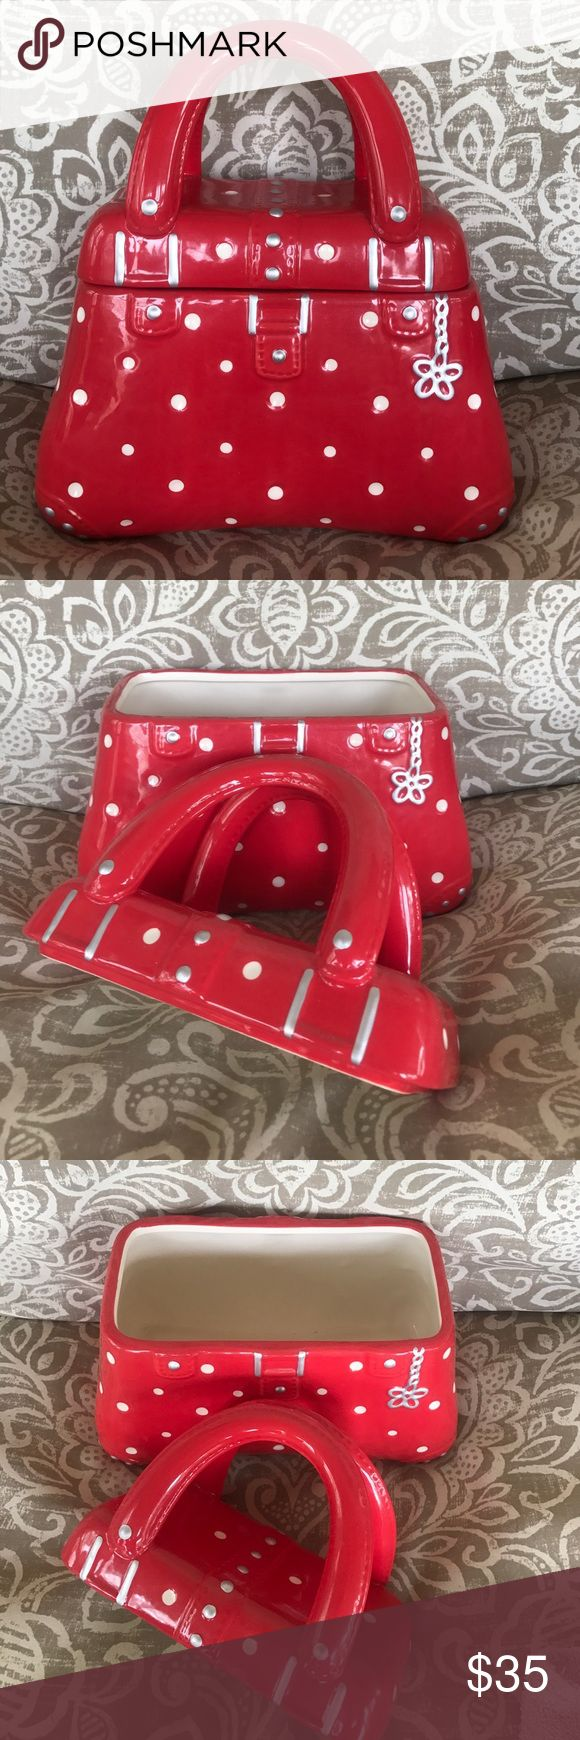 Temptations red dot purse cookie jar QVC polkadot Excellent used condition with no chips. Please also see my other Temptations items. Temptations Other